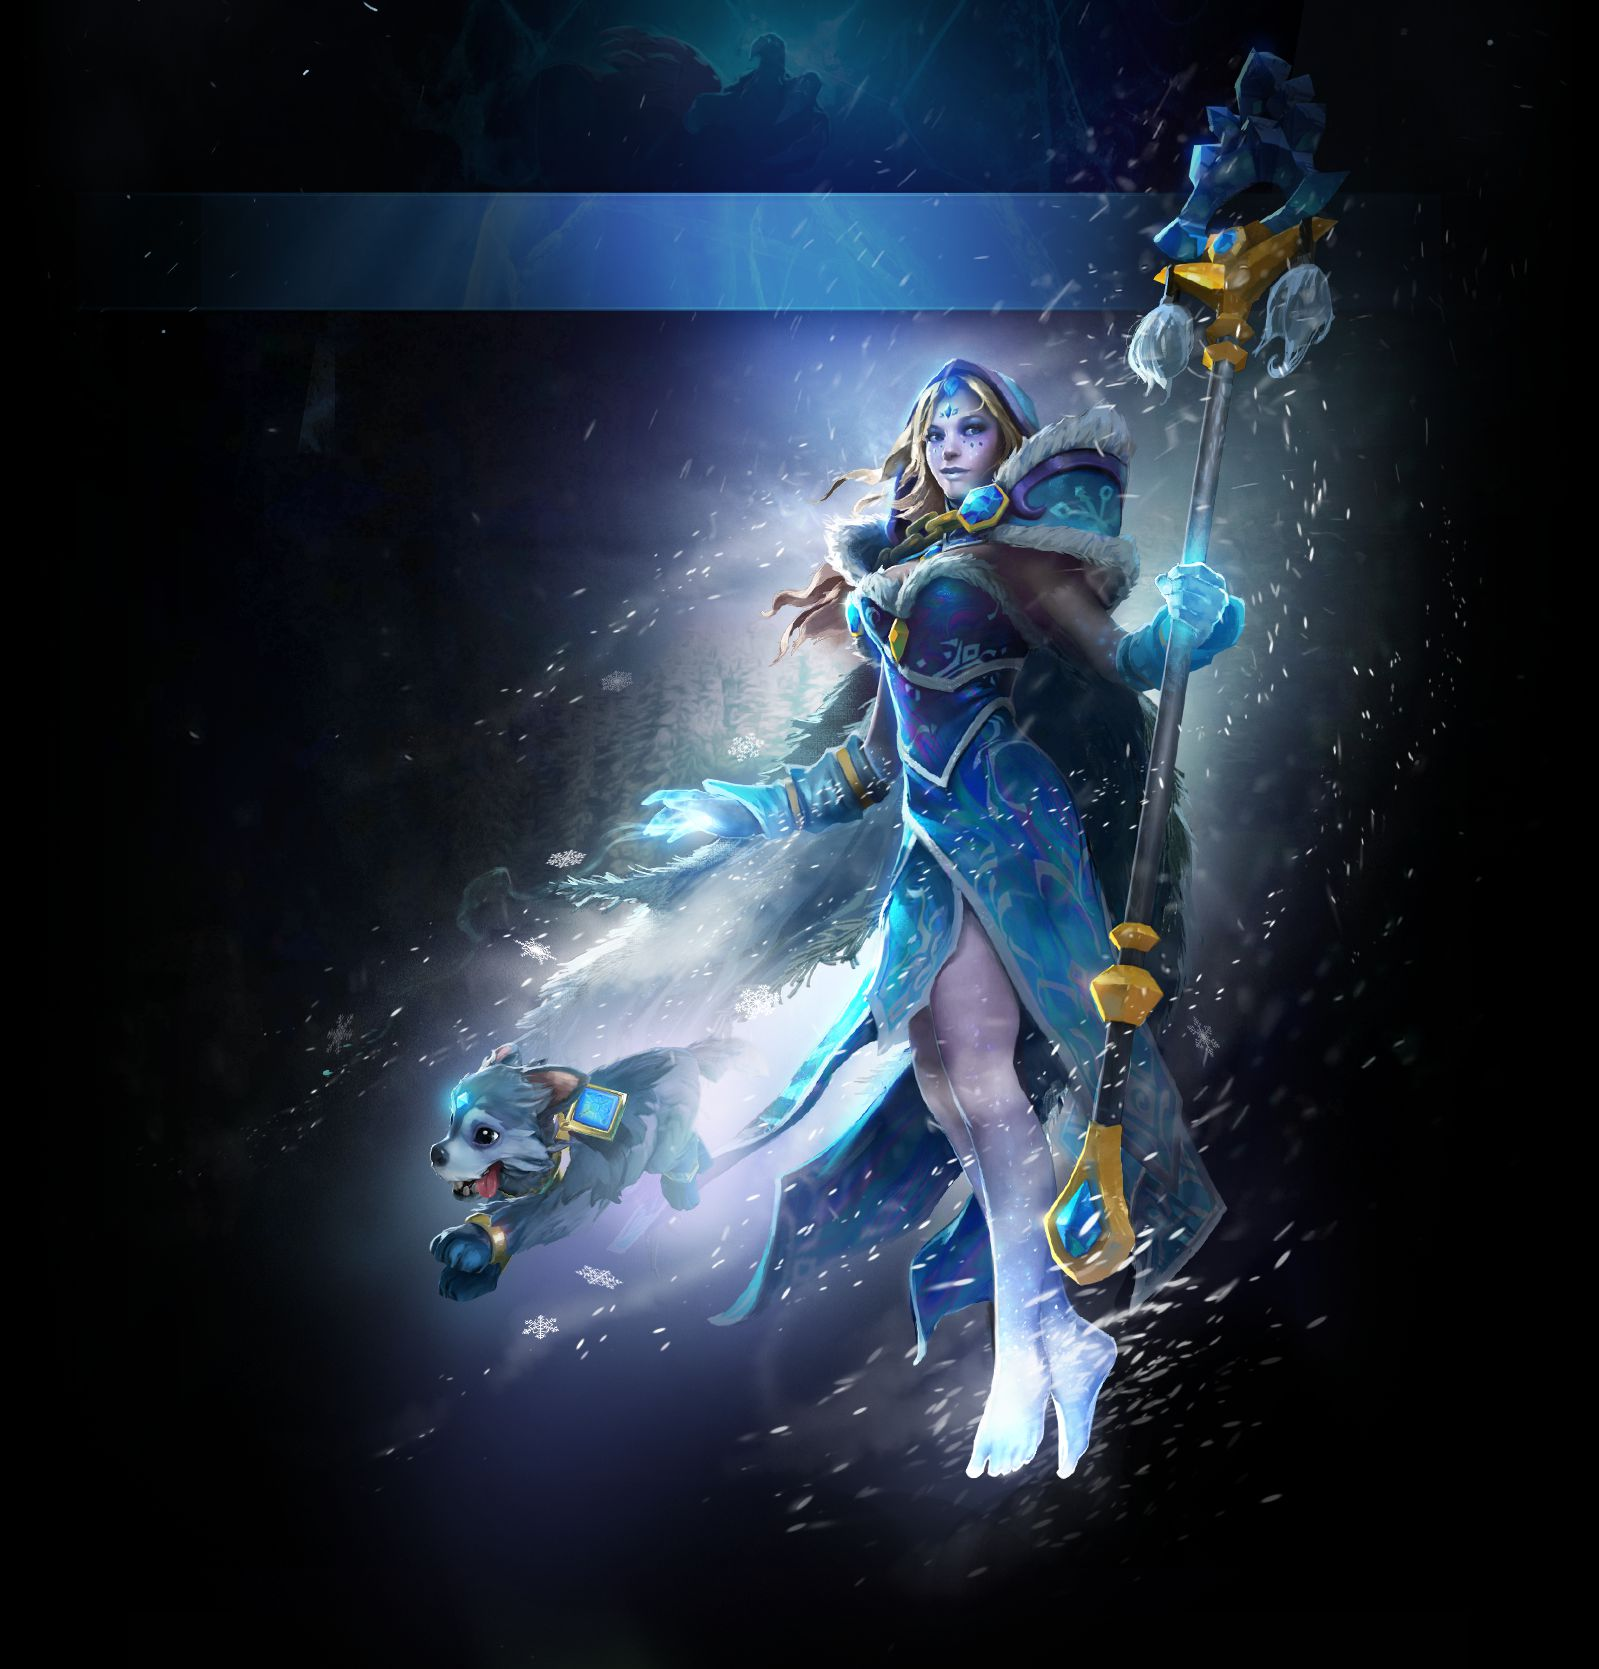 New Bloom Festival Returns To Dota 2 With New Hero And A Wolf Puppy VG247